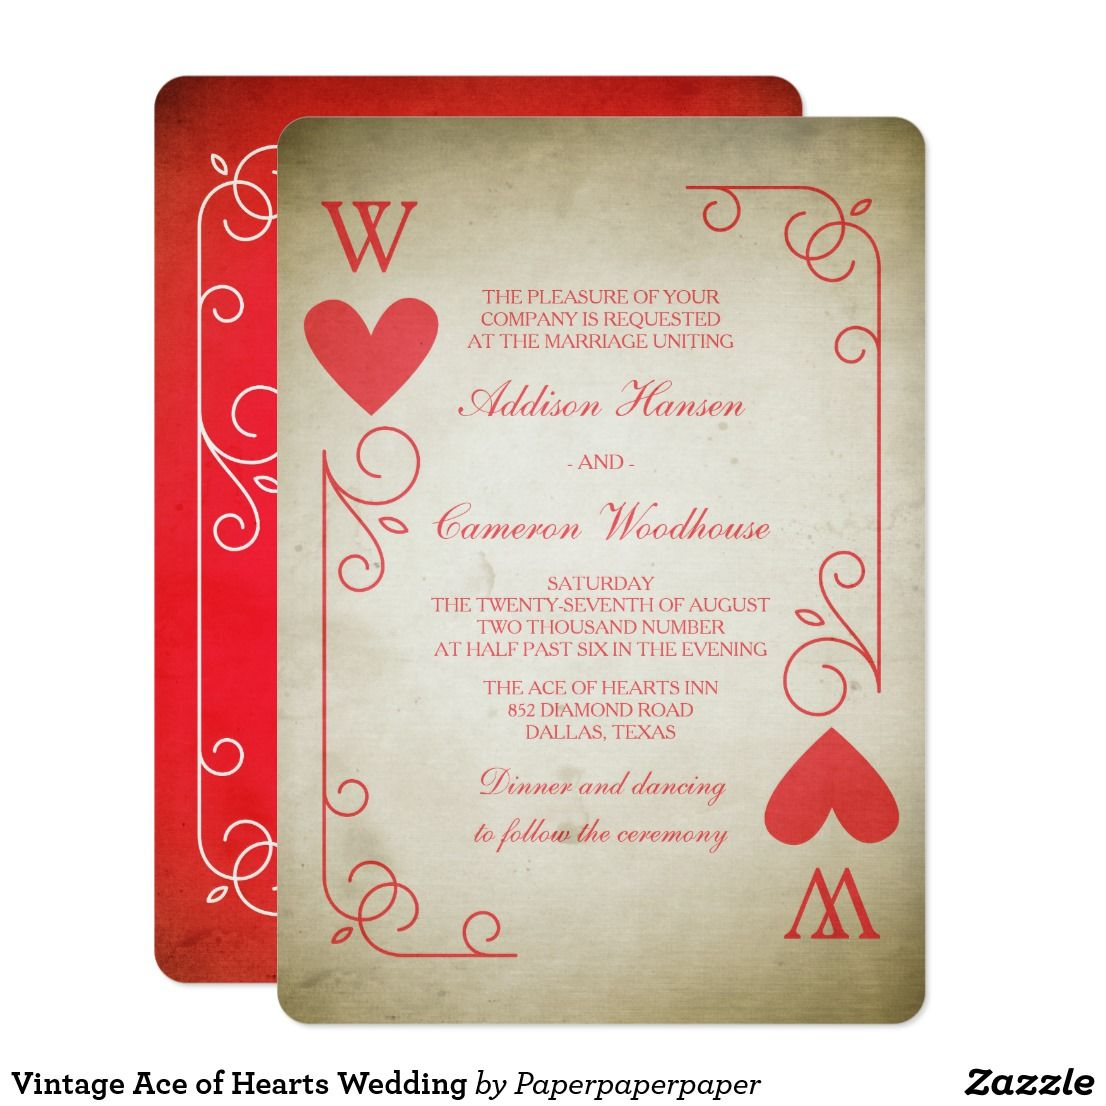 Vintage Ace of Hearts Wedding Card | Wedding card, Vintage wedding ...